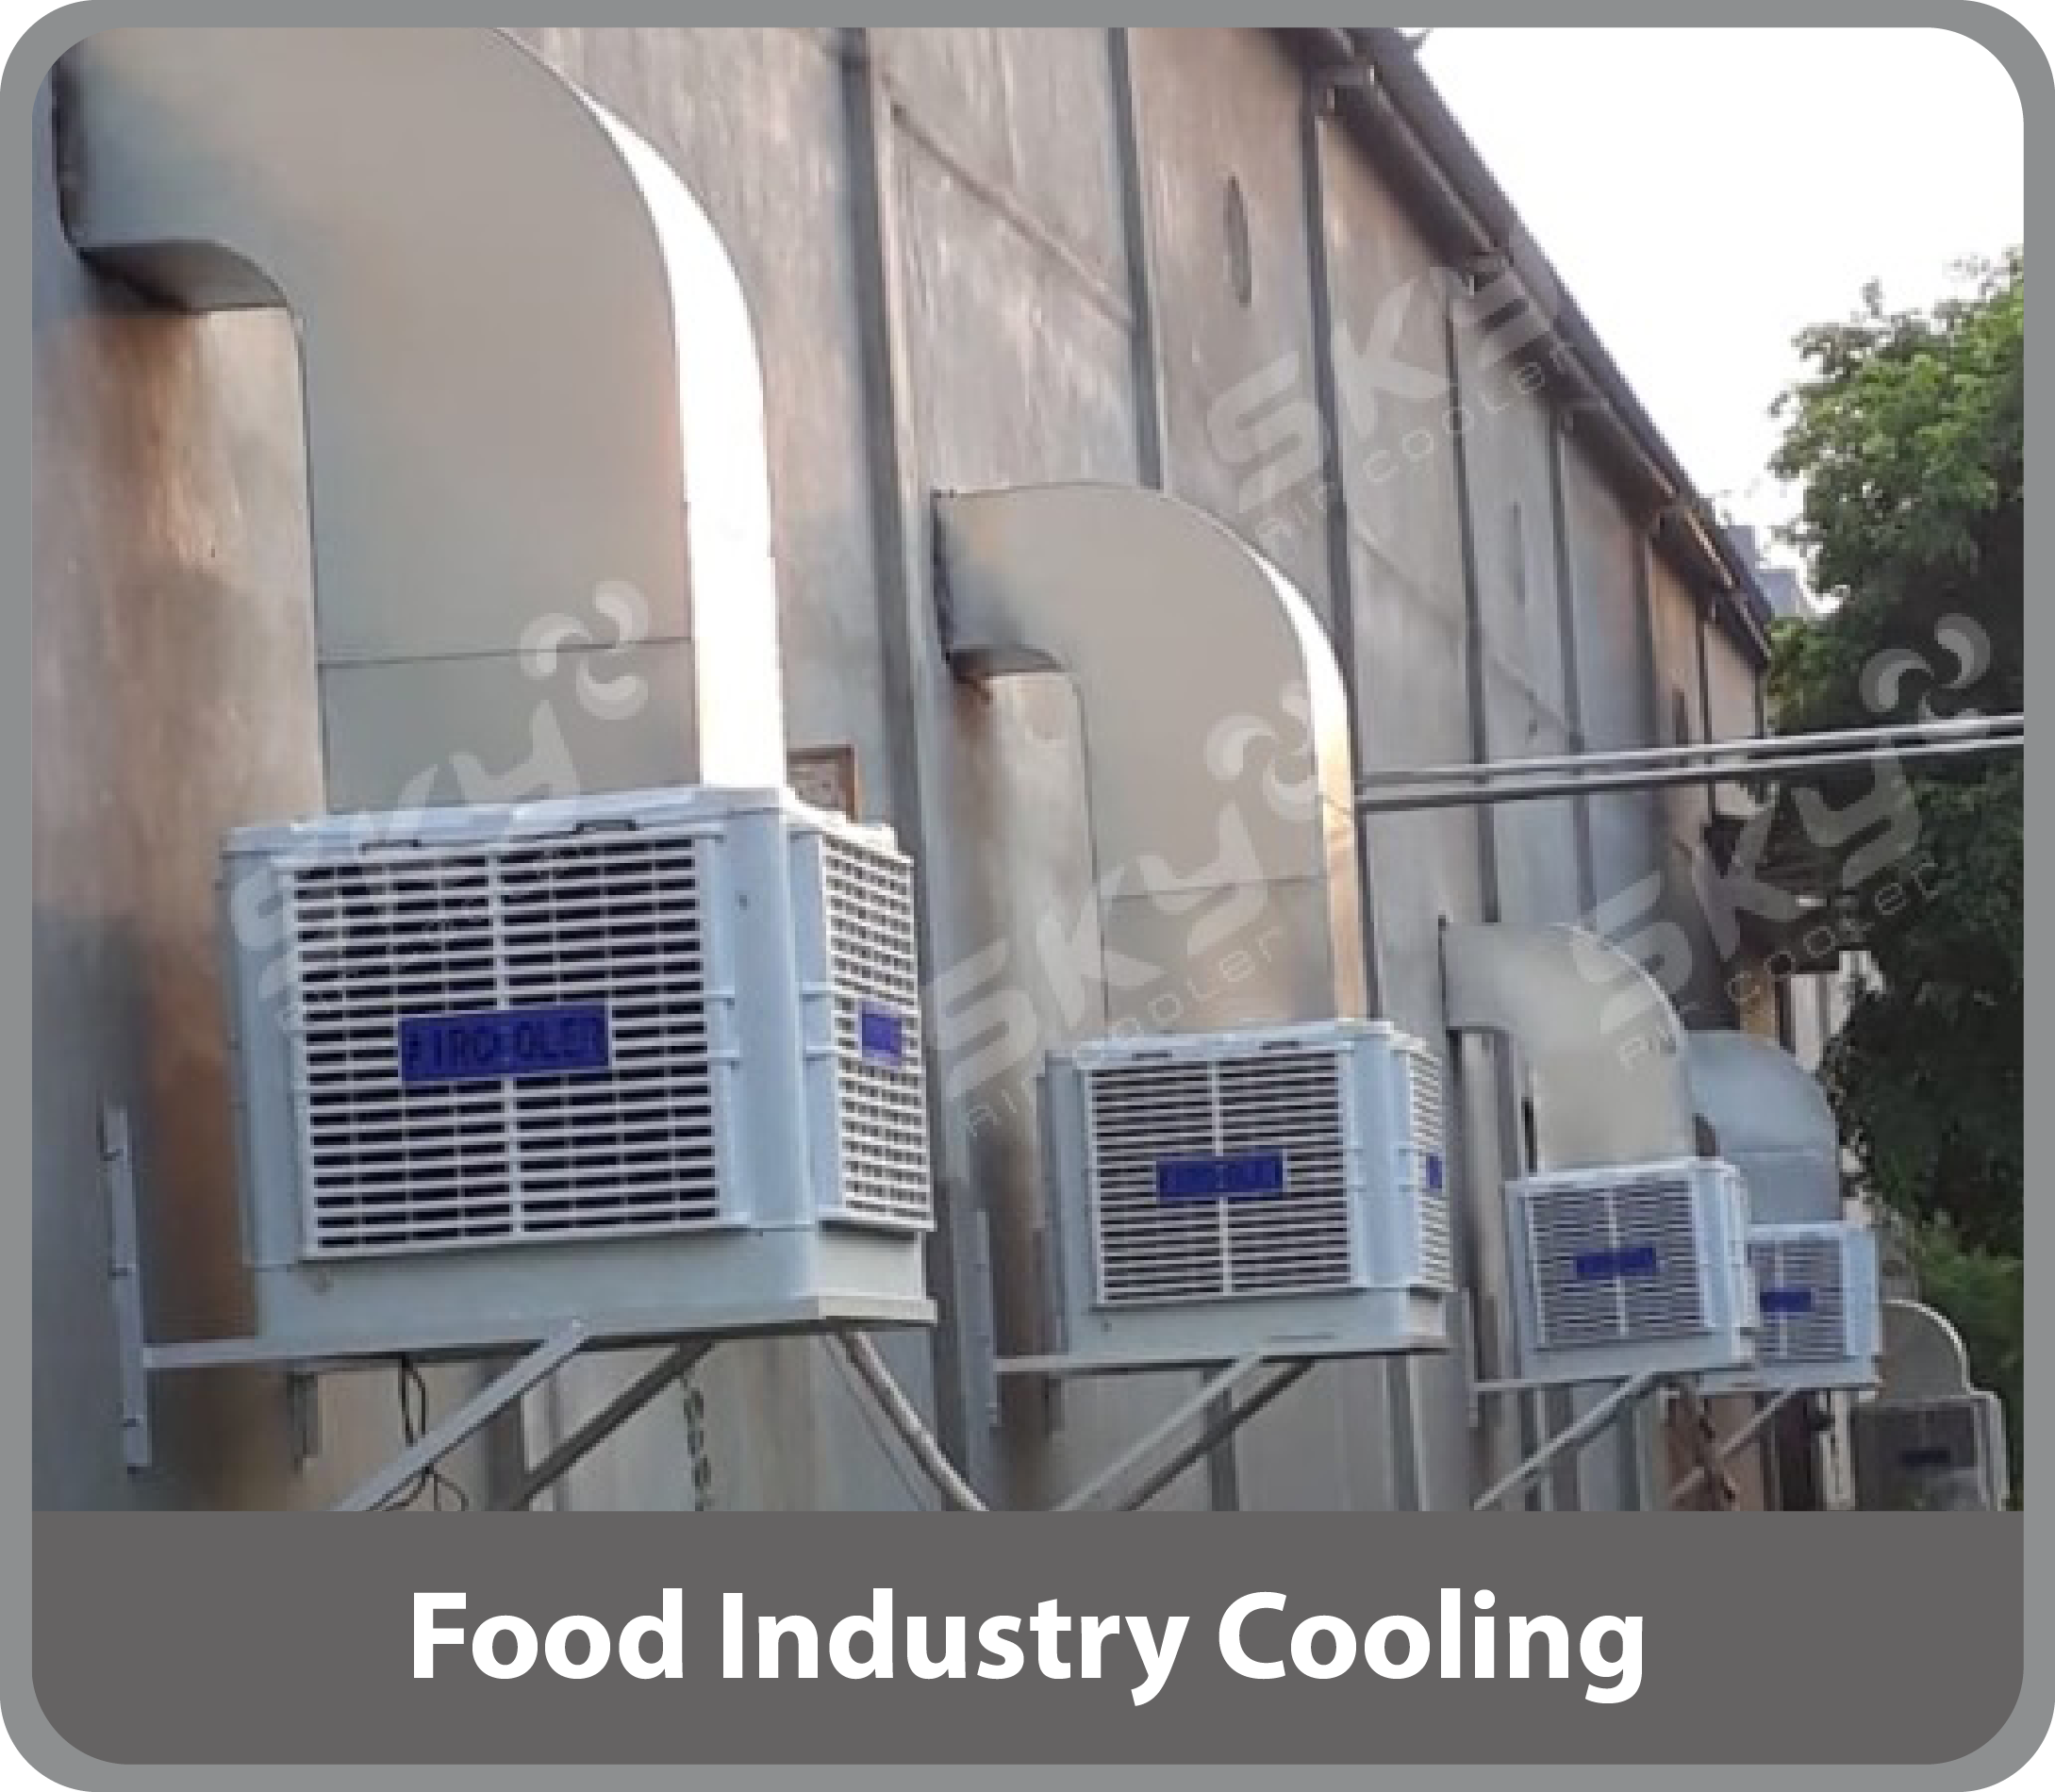 Food Industry Cooling